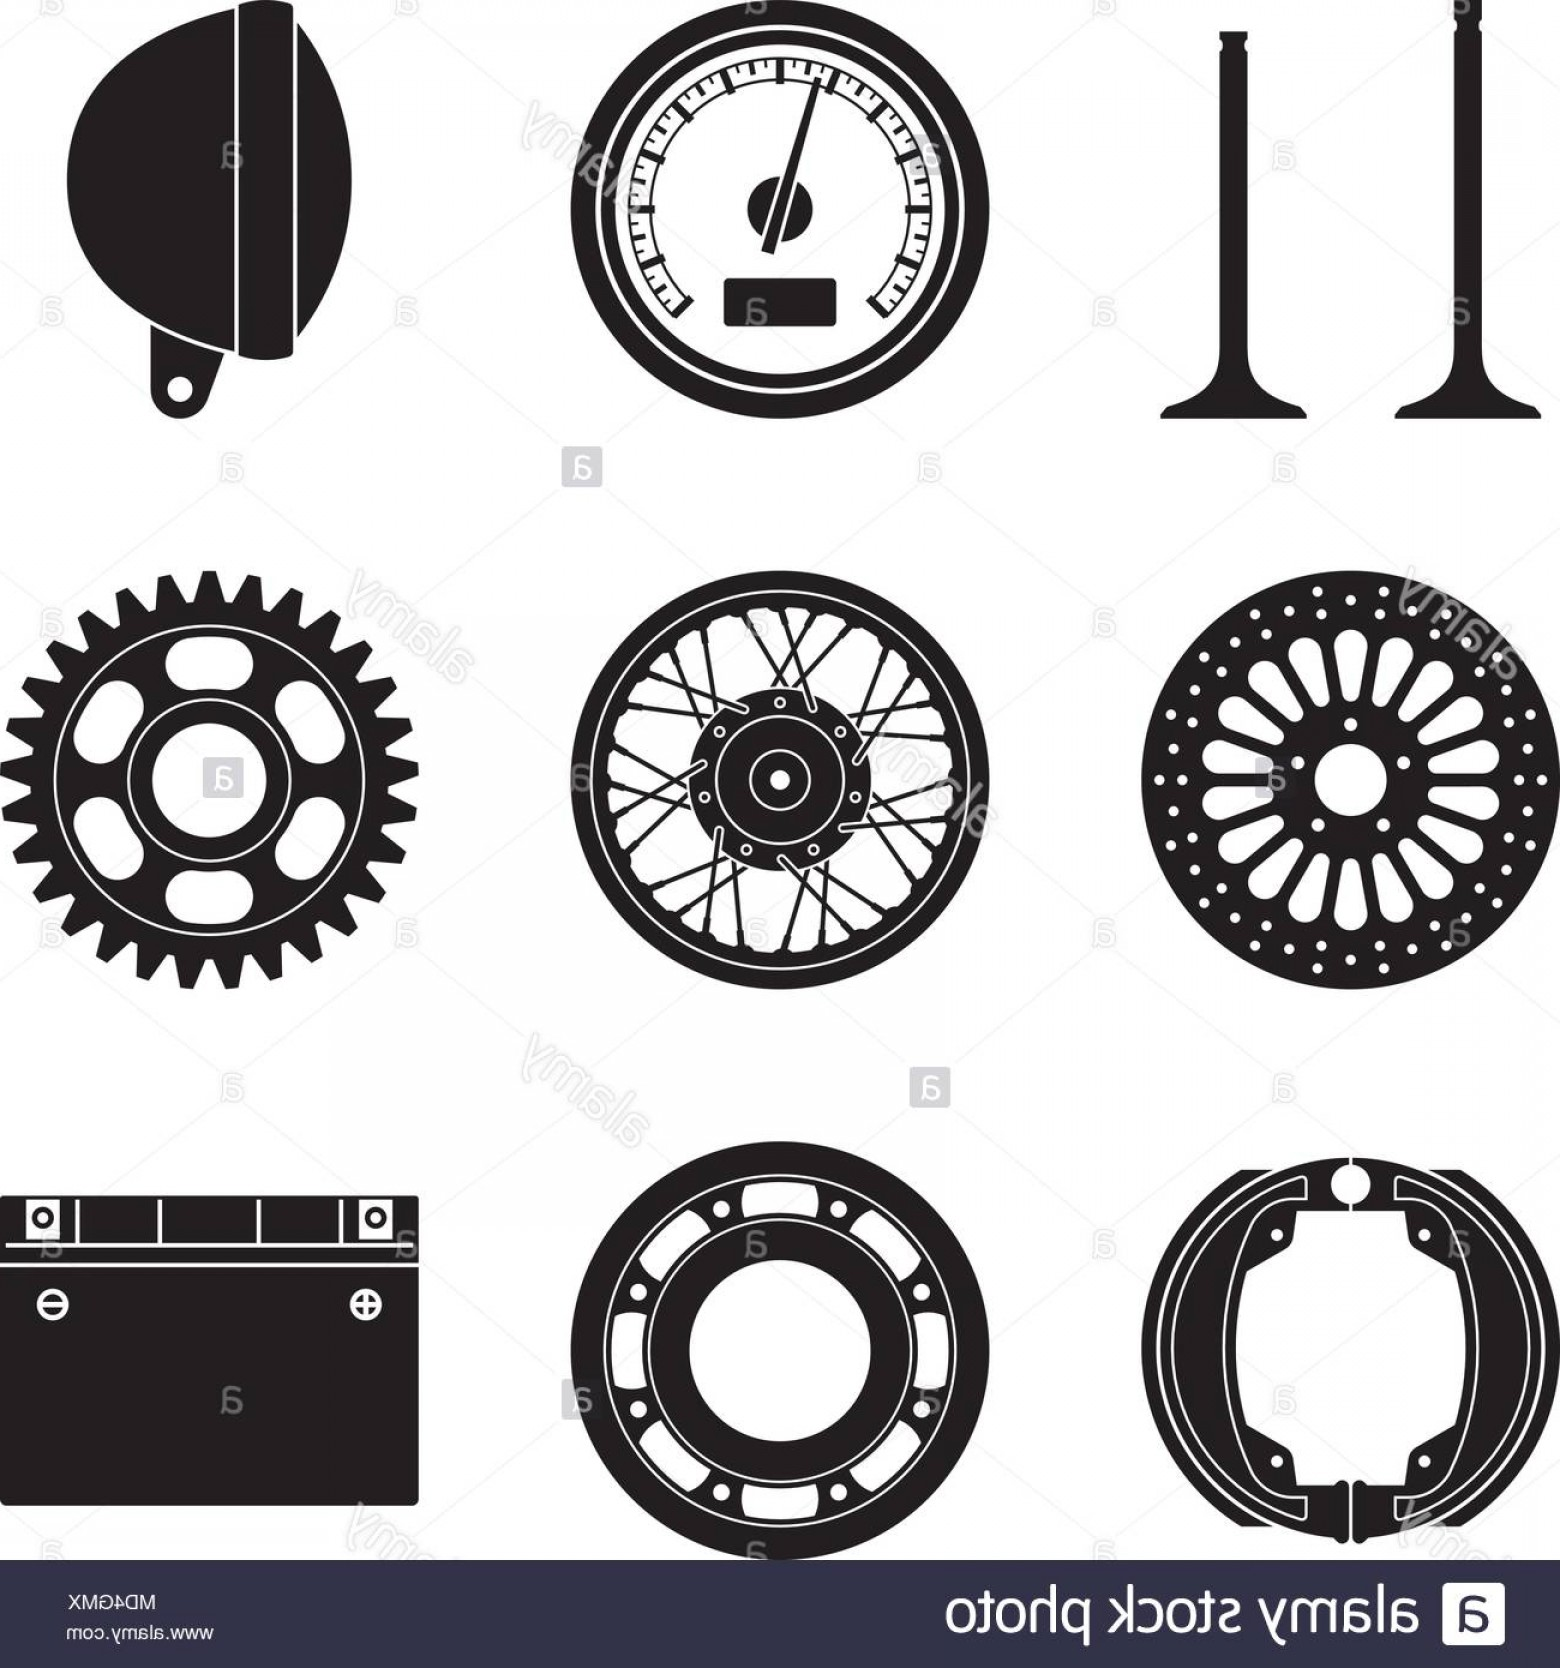 Vector Motorcycle Parts: Motorcycle Parts And Accessories Silhouette Vector Image